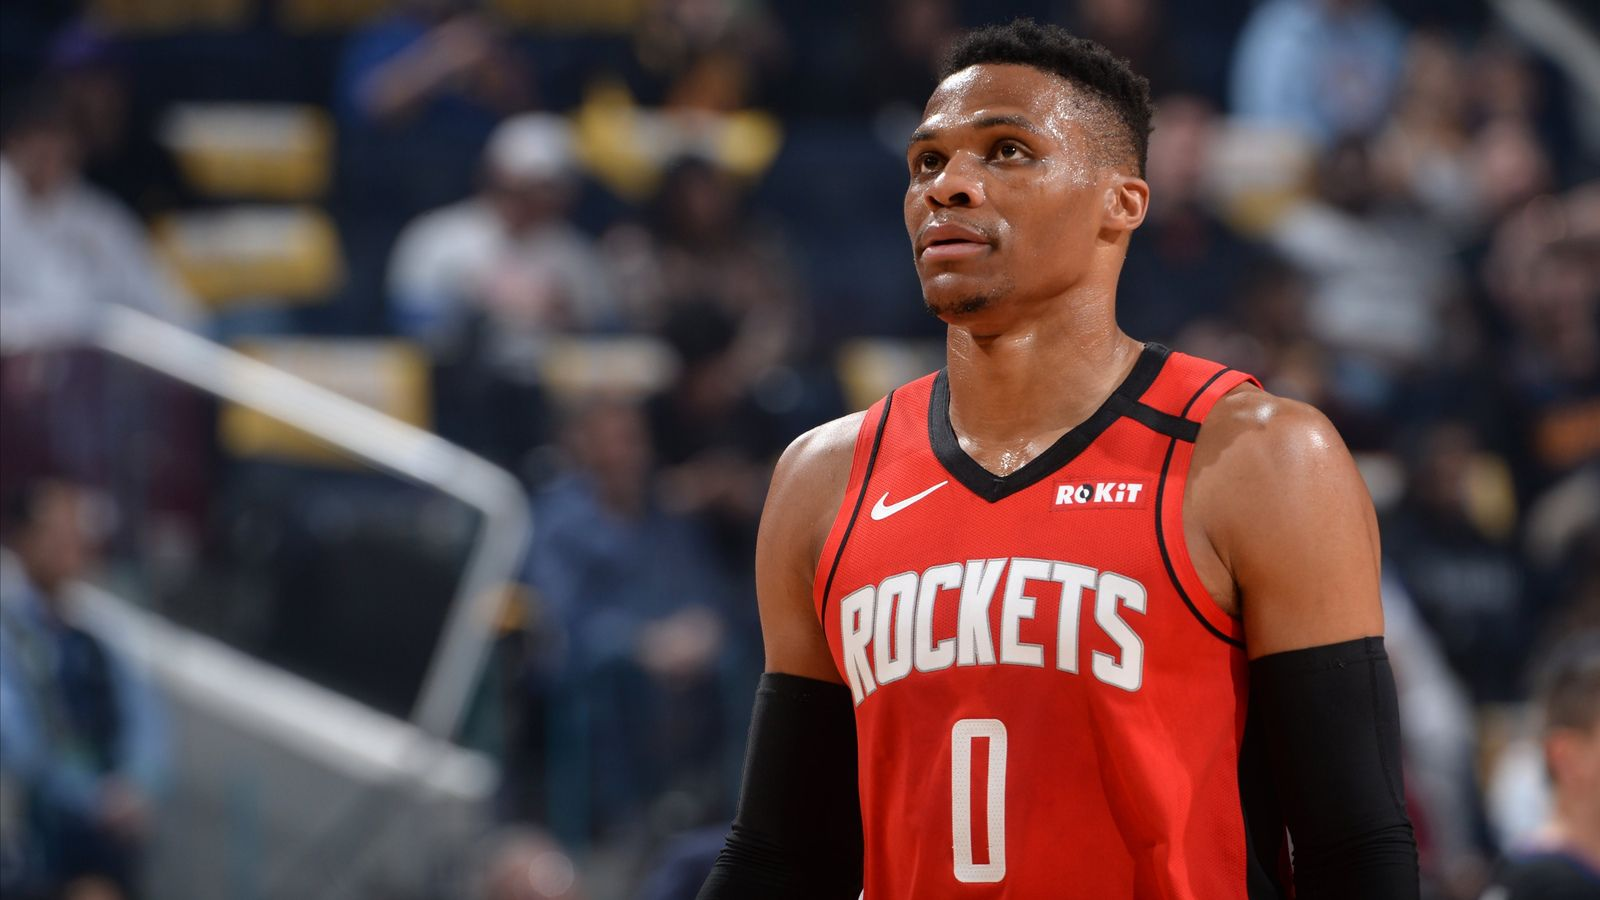 Russell Westbrook admet avoir contracté le COVID-19